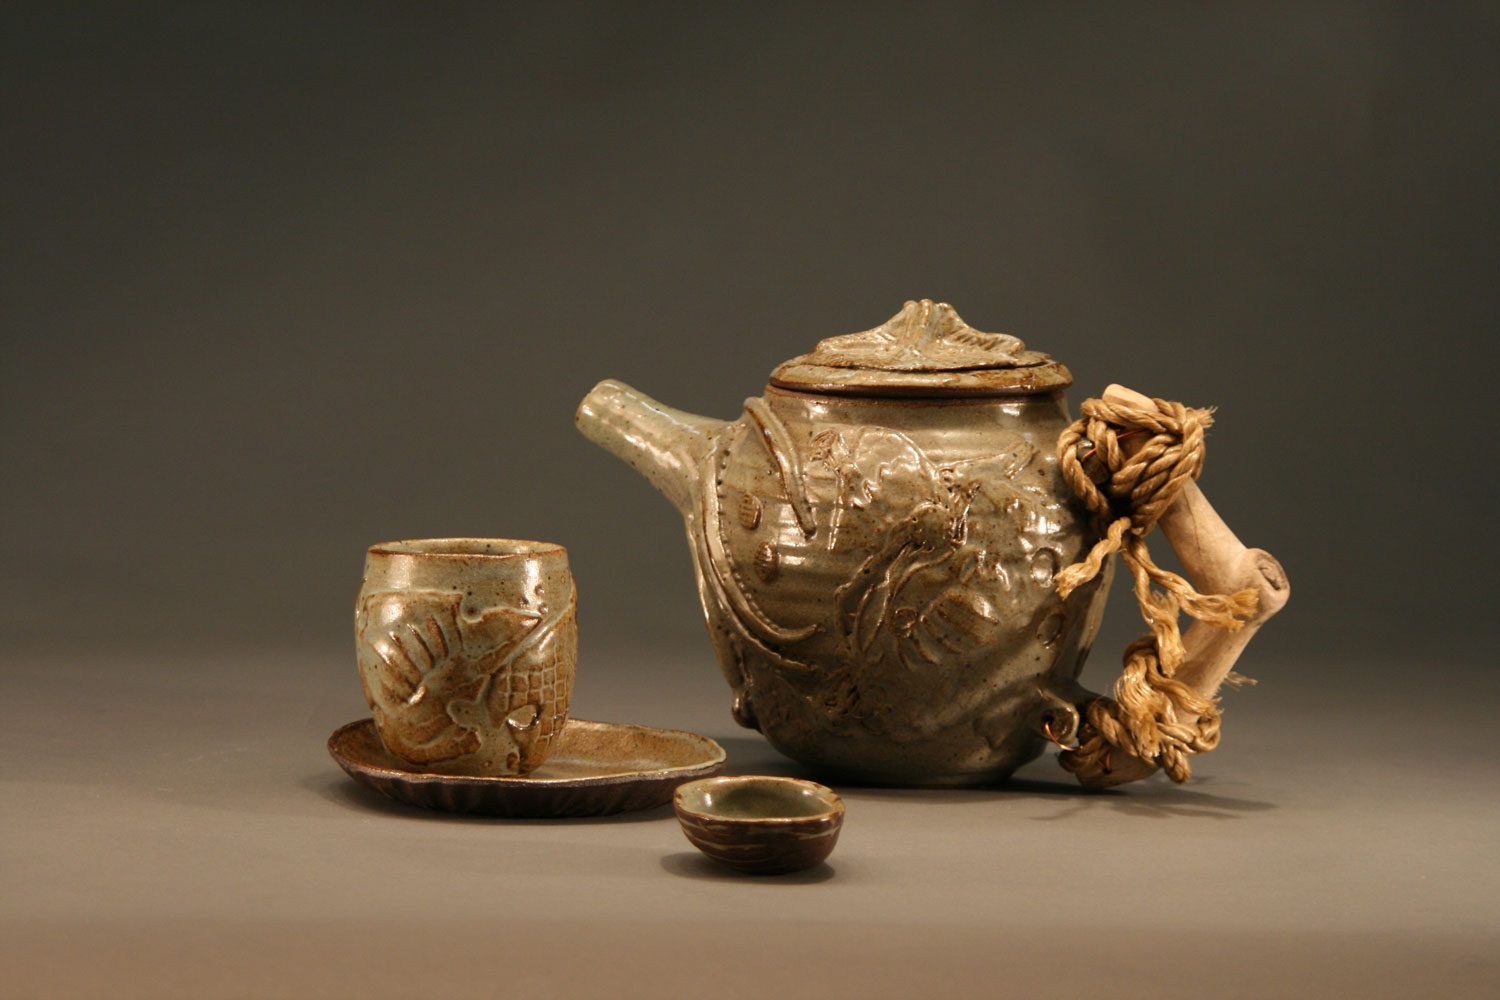 West Fork Studio Octopus Garden Tea Set By Mimi Booth